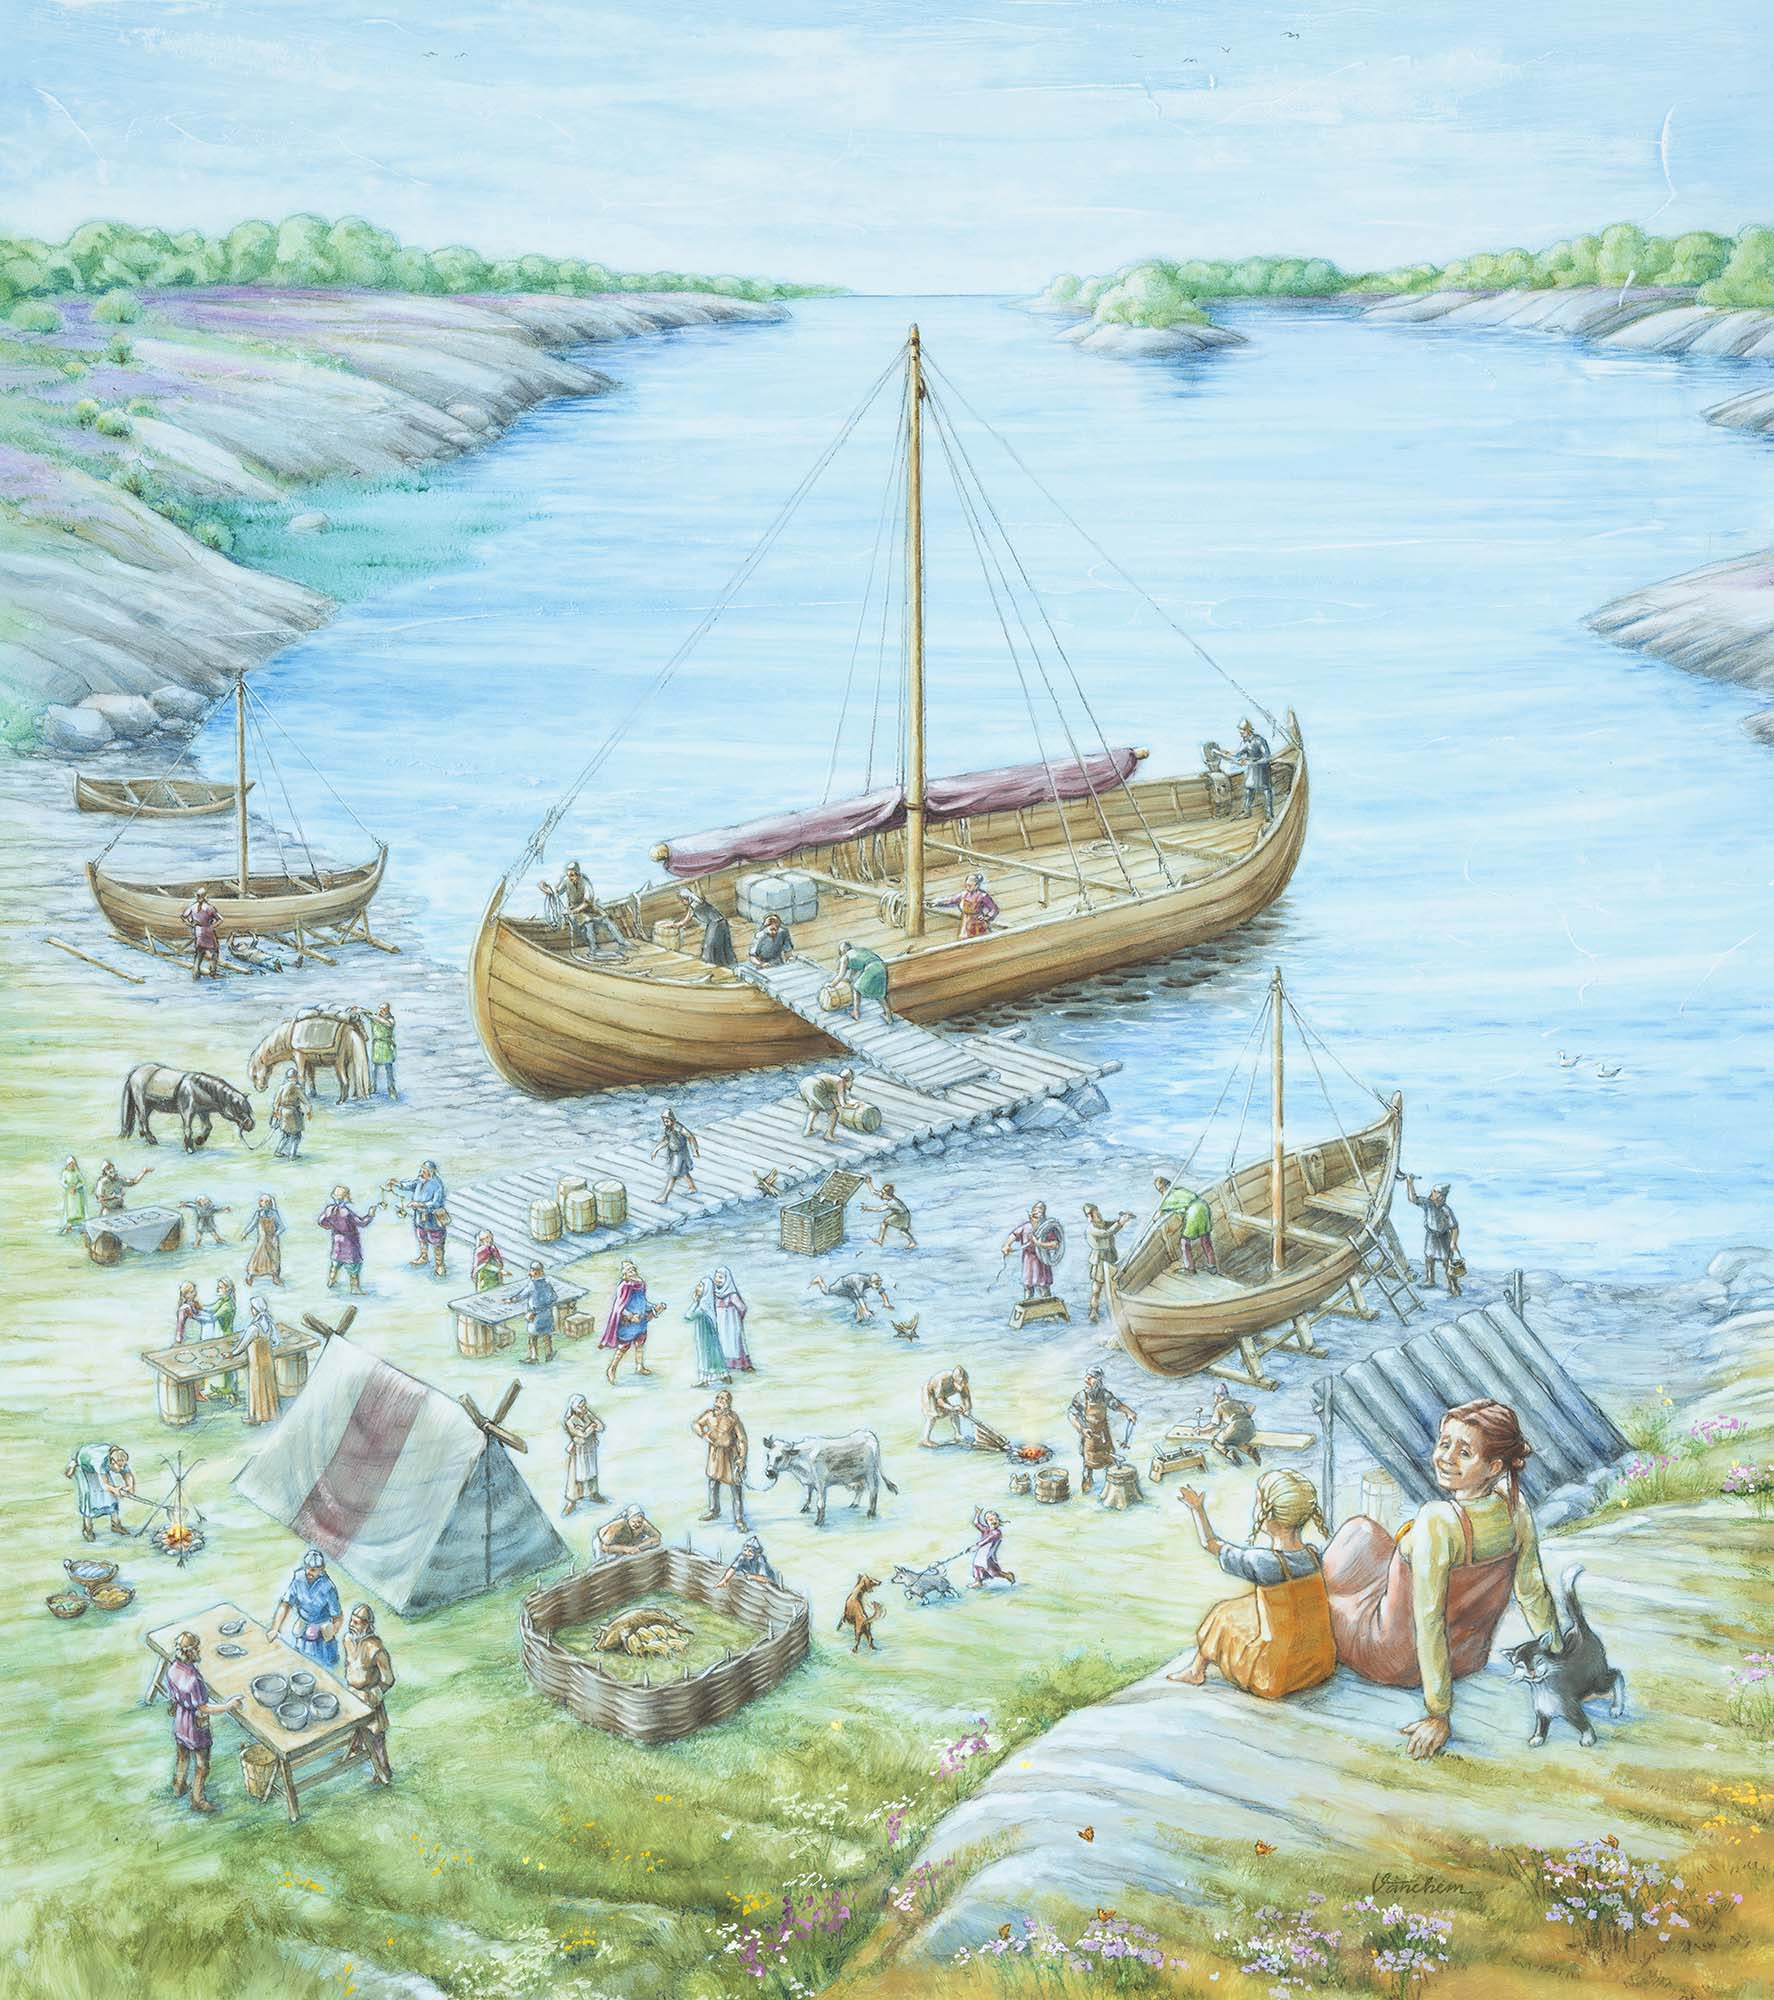 A Viking Age trading place on the south coast of Norway (Client: Aust Agder Museum og Arkiv in Arendal, Norway).